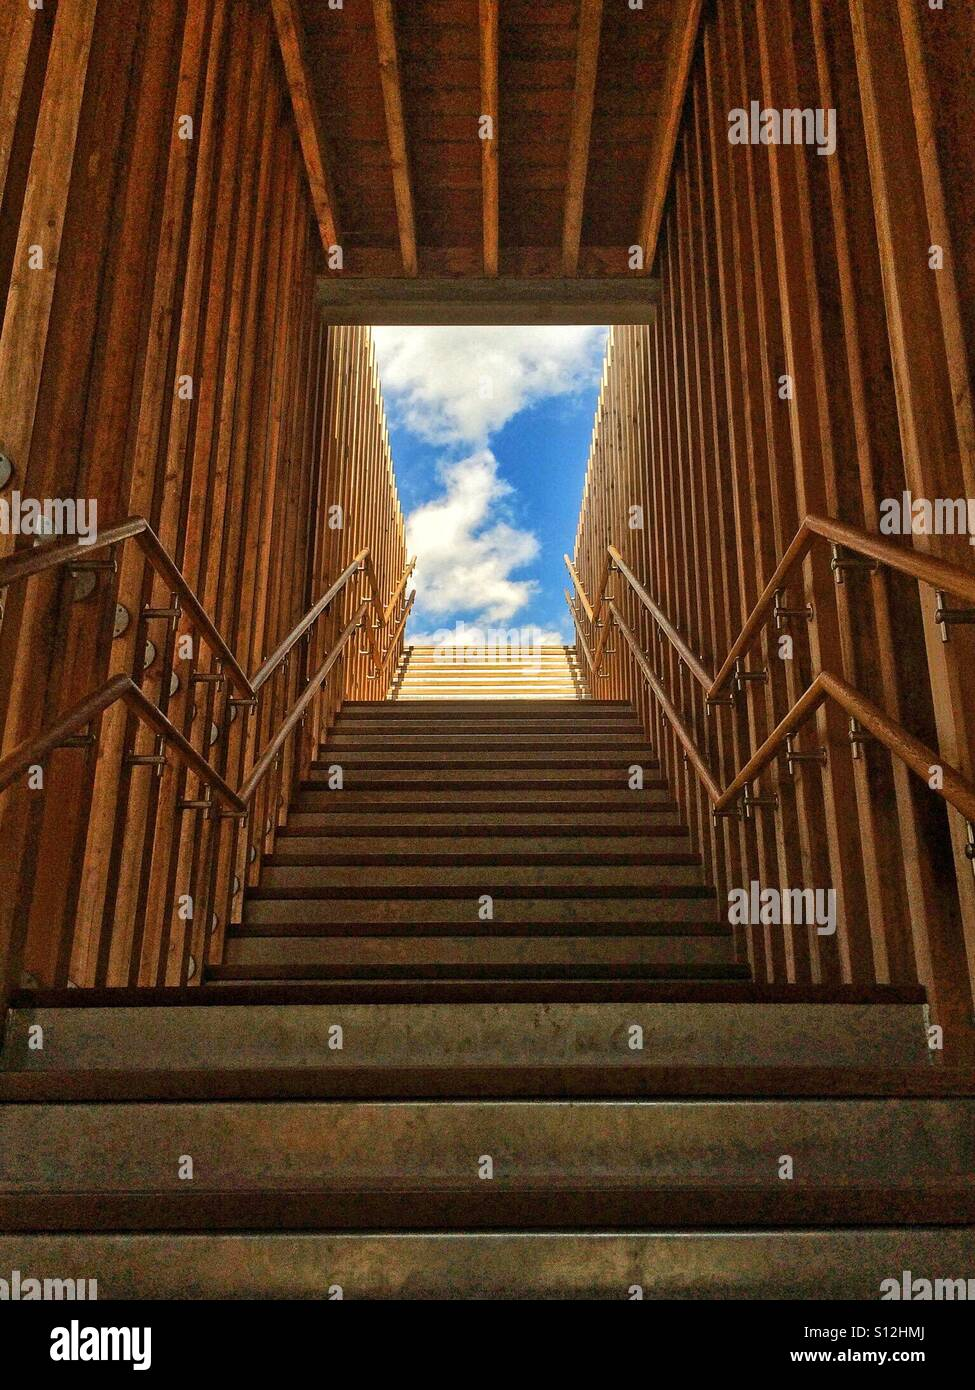 Looking up flight of stairs towards blue sky England UK - Stock Image